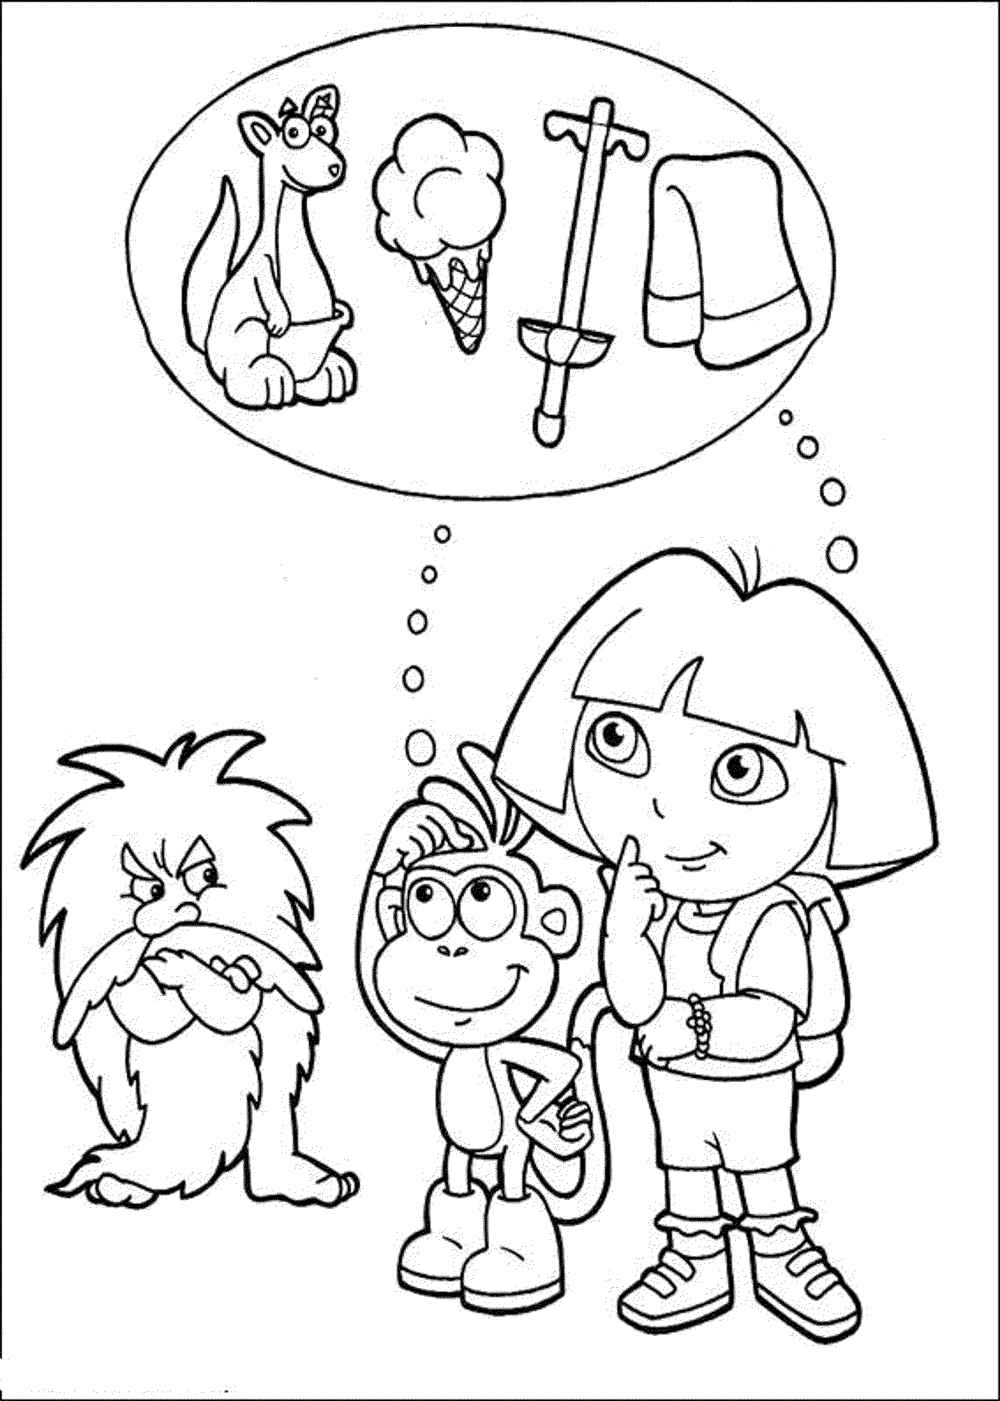 free printable dora coloring pages dora drawing pictures at getdrawings free download pages free printable coloring dora